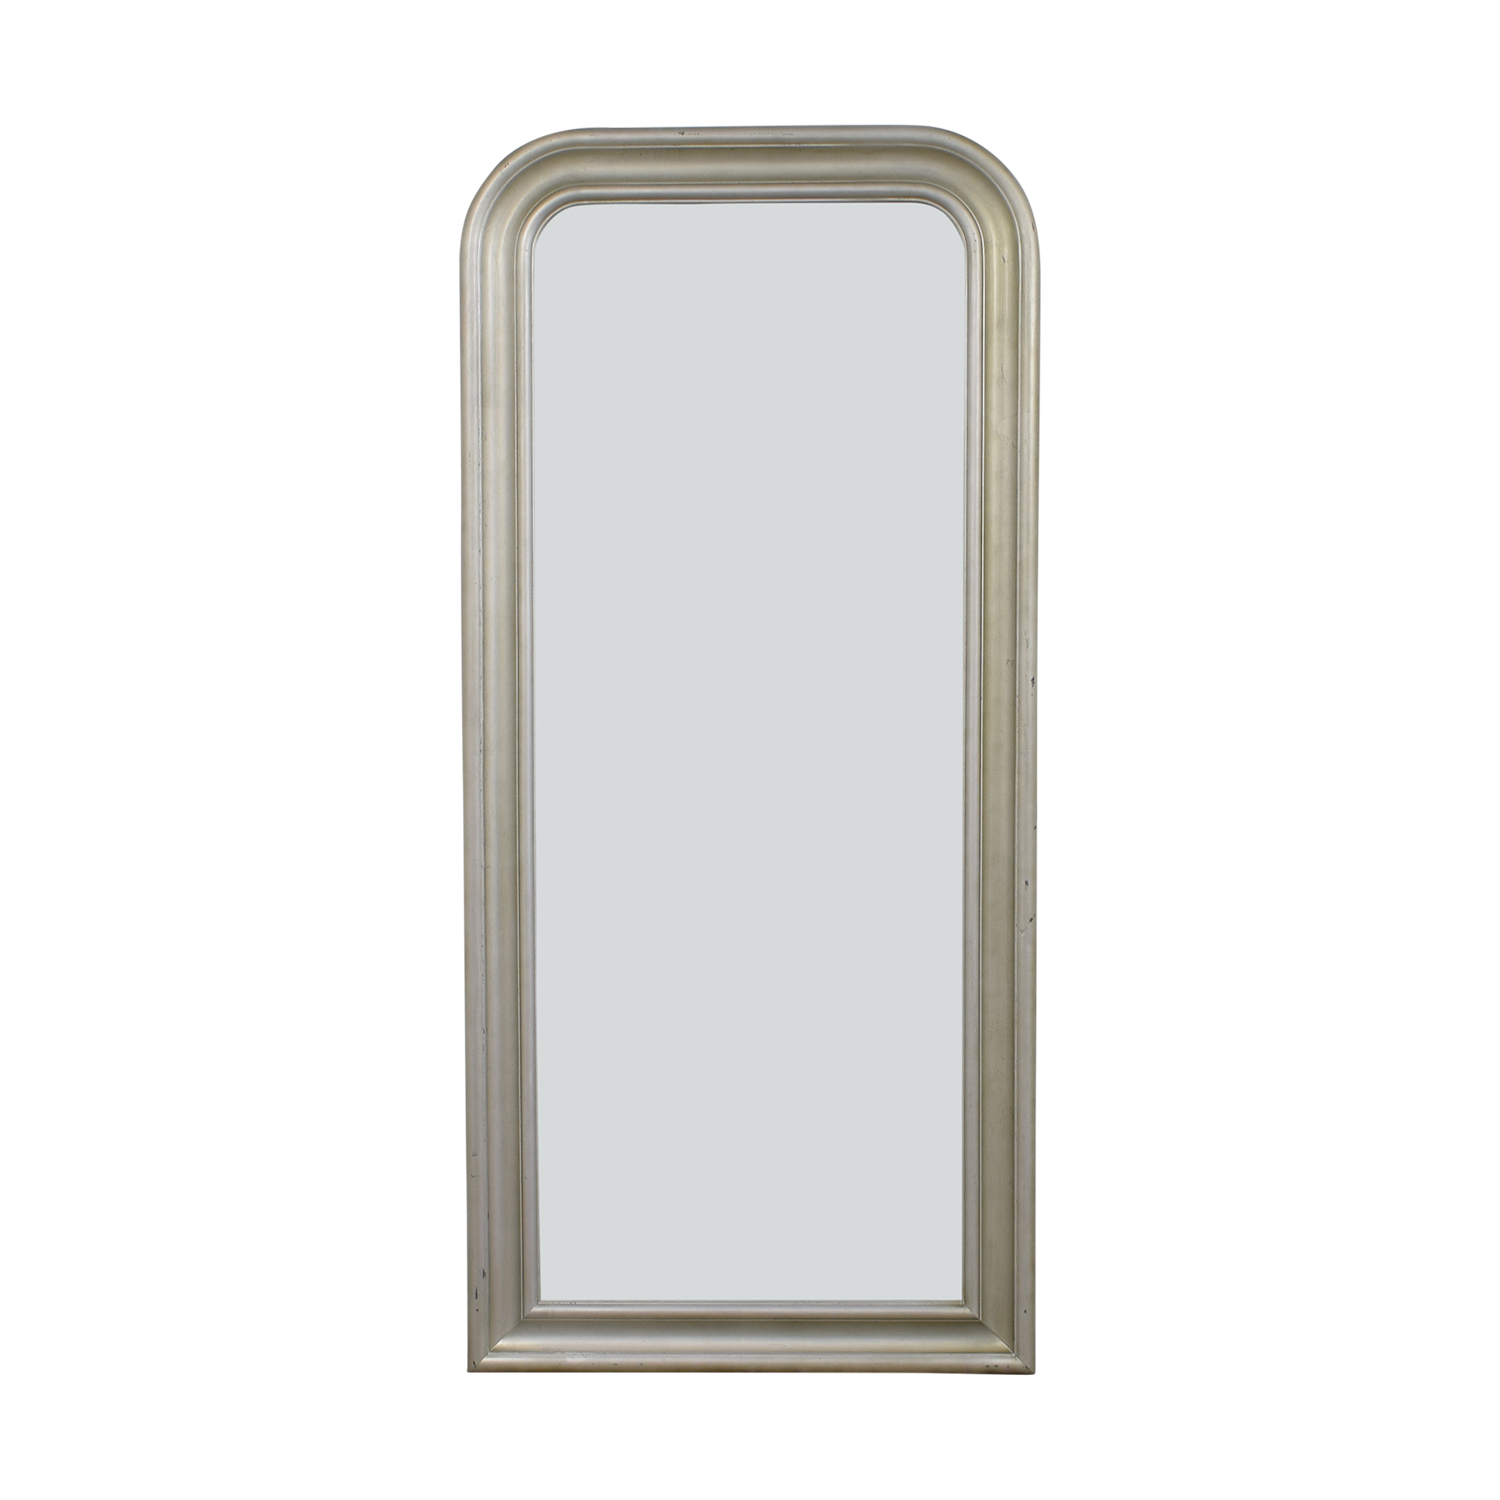 [%27% Off – Ikea Ikea Songe Full Length Mirror / Decor With Most Current Ikea Full Length Wall Mirrors|Ikea Full Length Wall Mirrors Regarding Most Recent 27% Off – Ikea Ikea Songe Full Length Mirror / Decor|2019 Ikea Full Length Wall Mirrors With Regard To 27% Off – Ikea Ikea Songe Full Length Mirror / Decor|Recent 27% Off – Ikea Ikea Songe Full Length Mirror / Decor For Ikea Full Length Wall Mirrors%] (View 1 of 20)